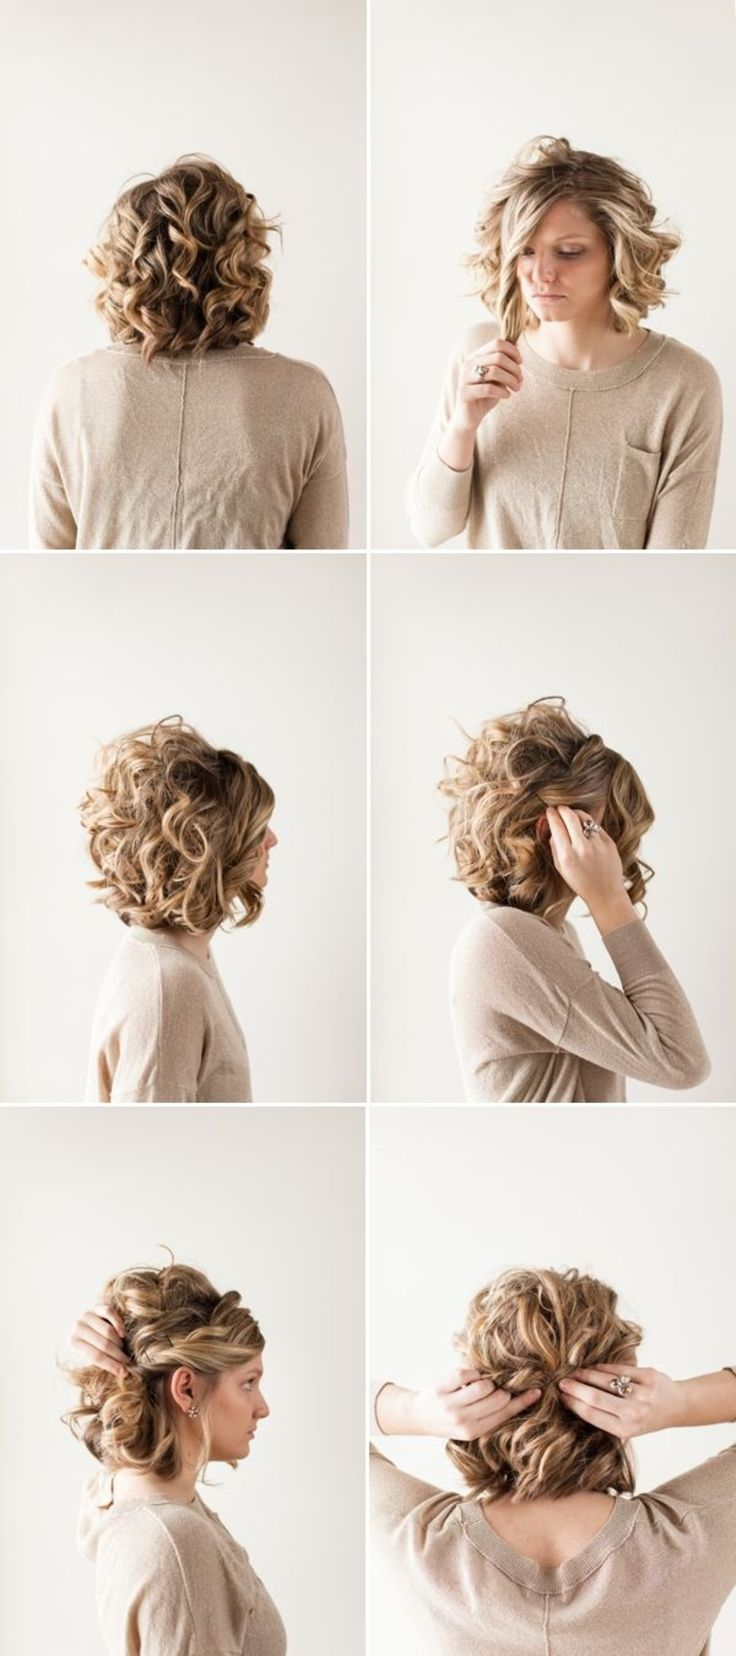 27 best wedding ideas images on Pinterest | Hairstyle short, Shorter ...